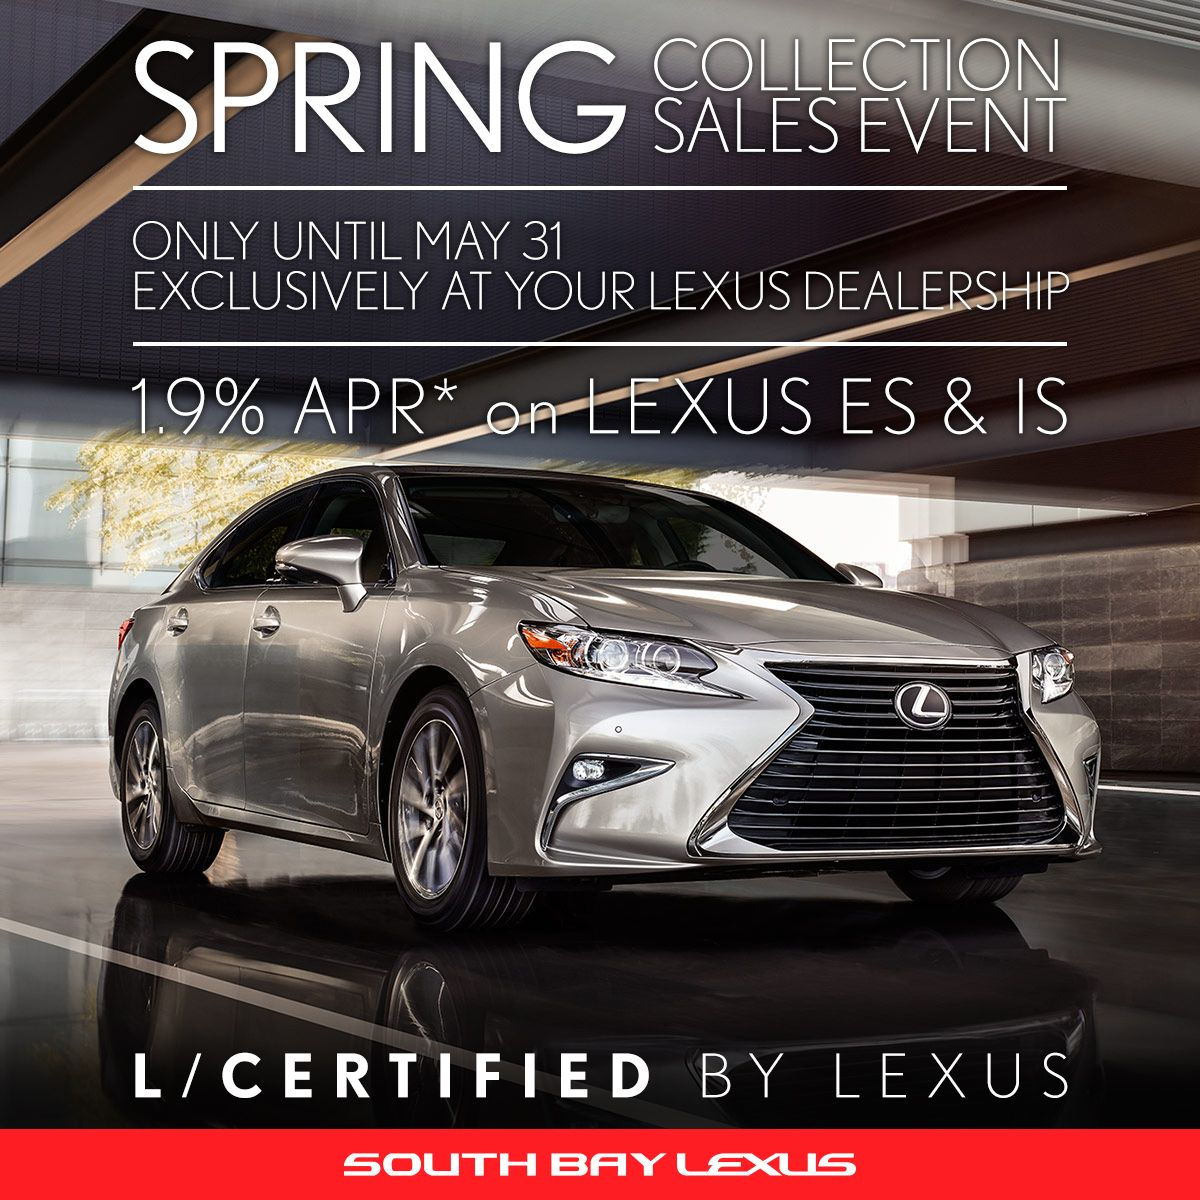 Take Advantage And Get This Deal At Our Dealership Before You Run Out Of Time Southbaylexus Springcollection Lexus Lexus Dealership New Lexus Suv